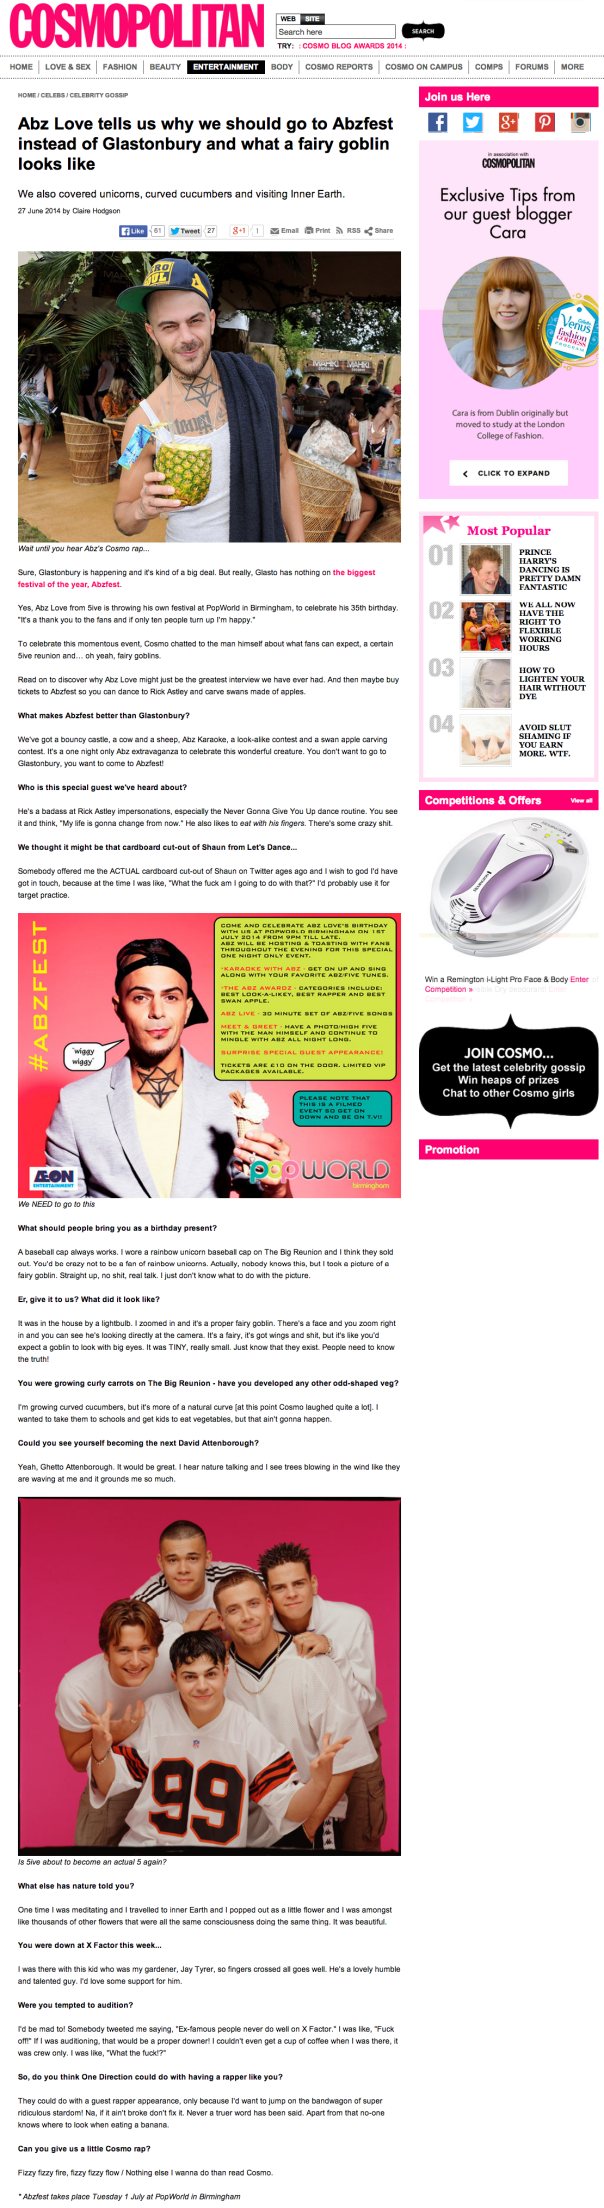 Abz-Cosmo Interview June 14